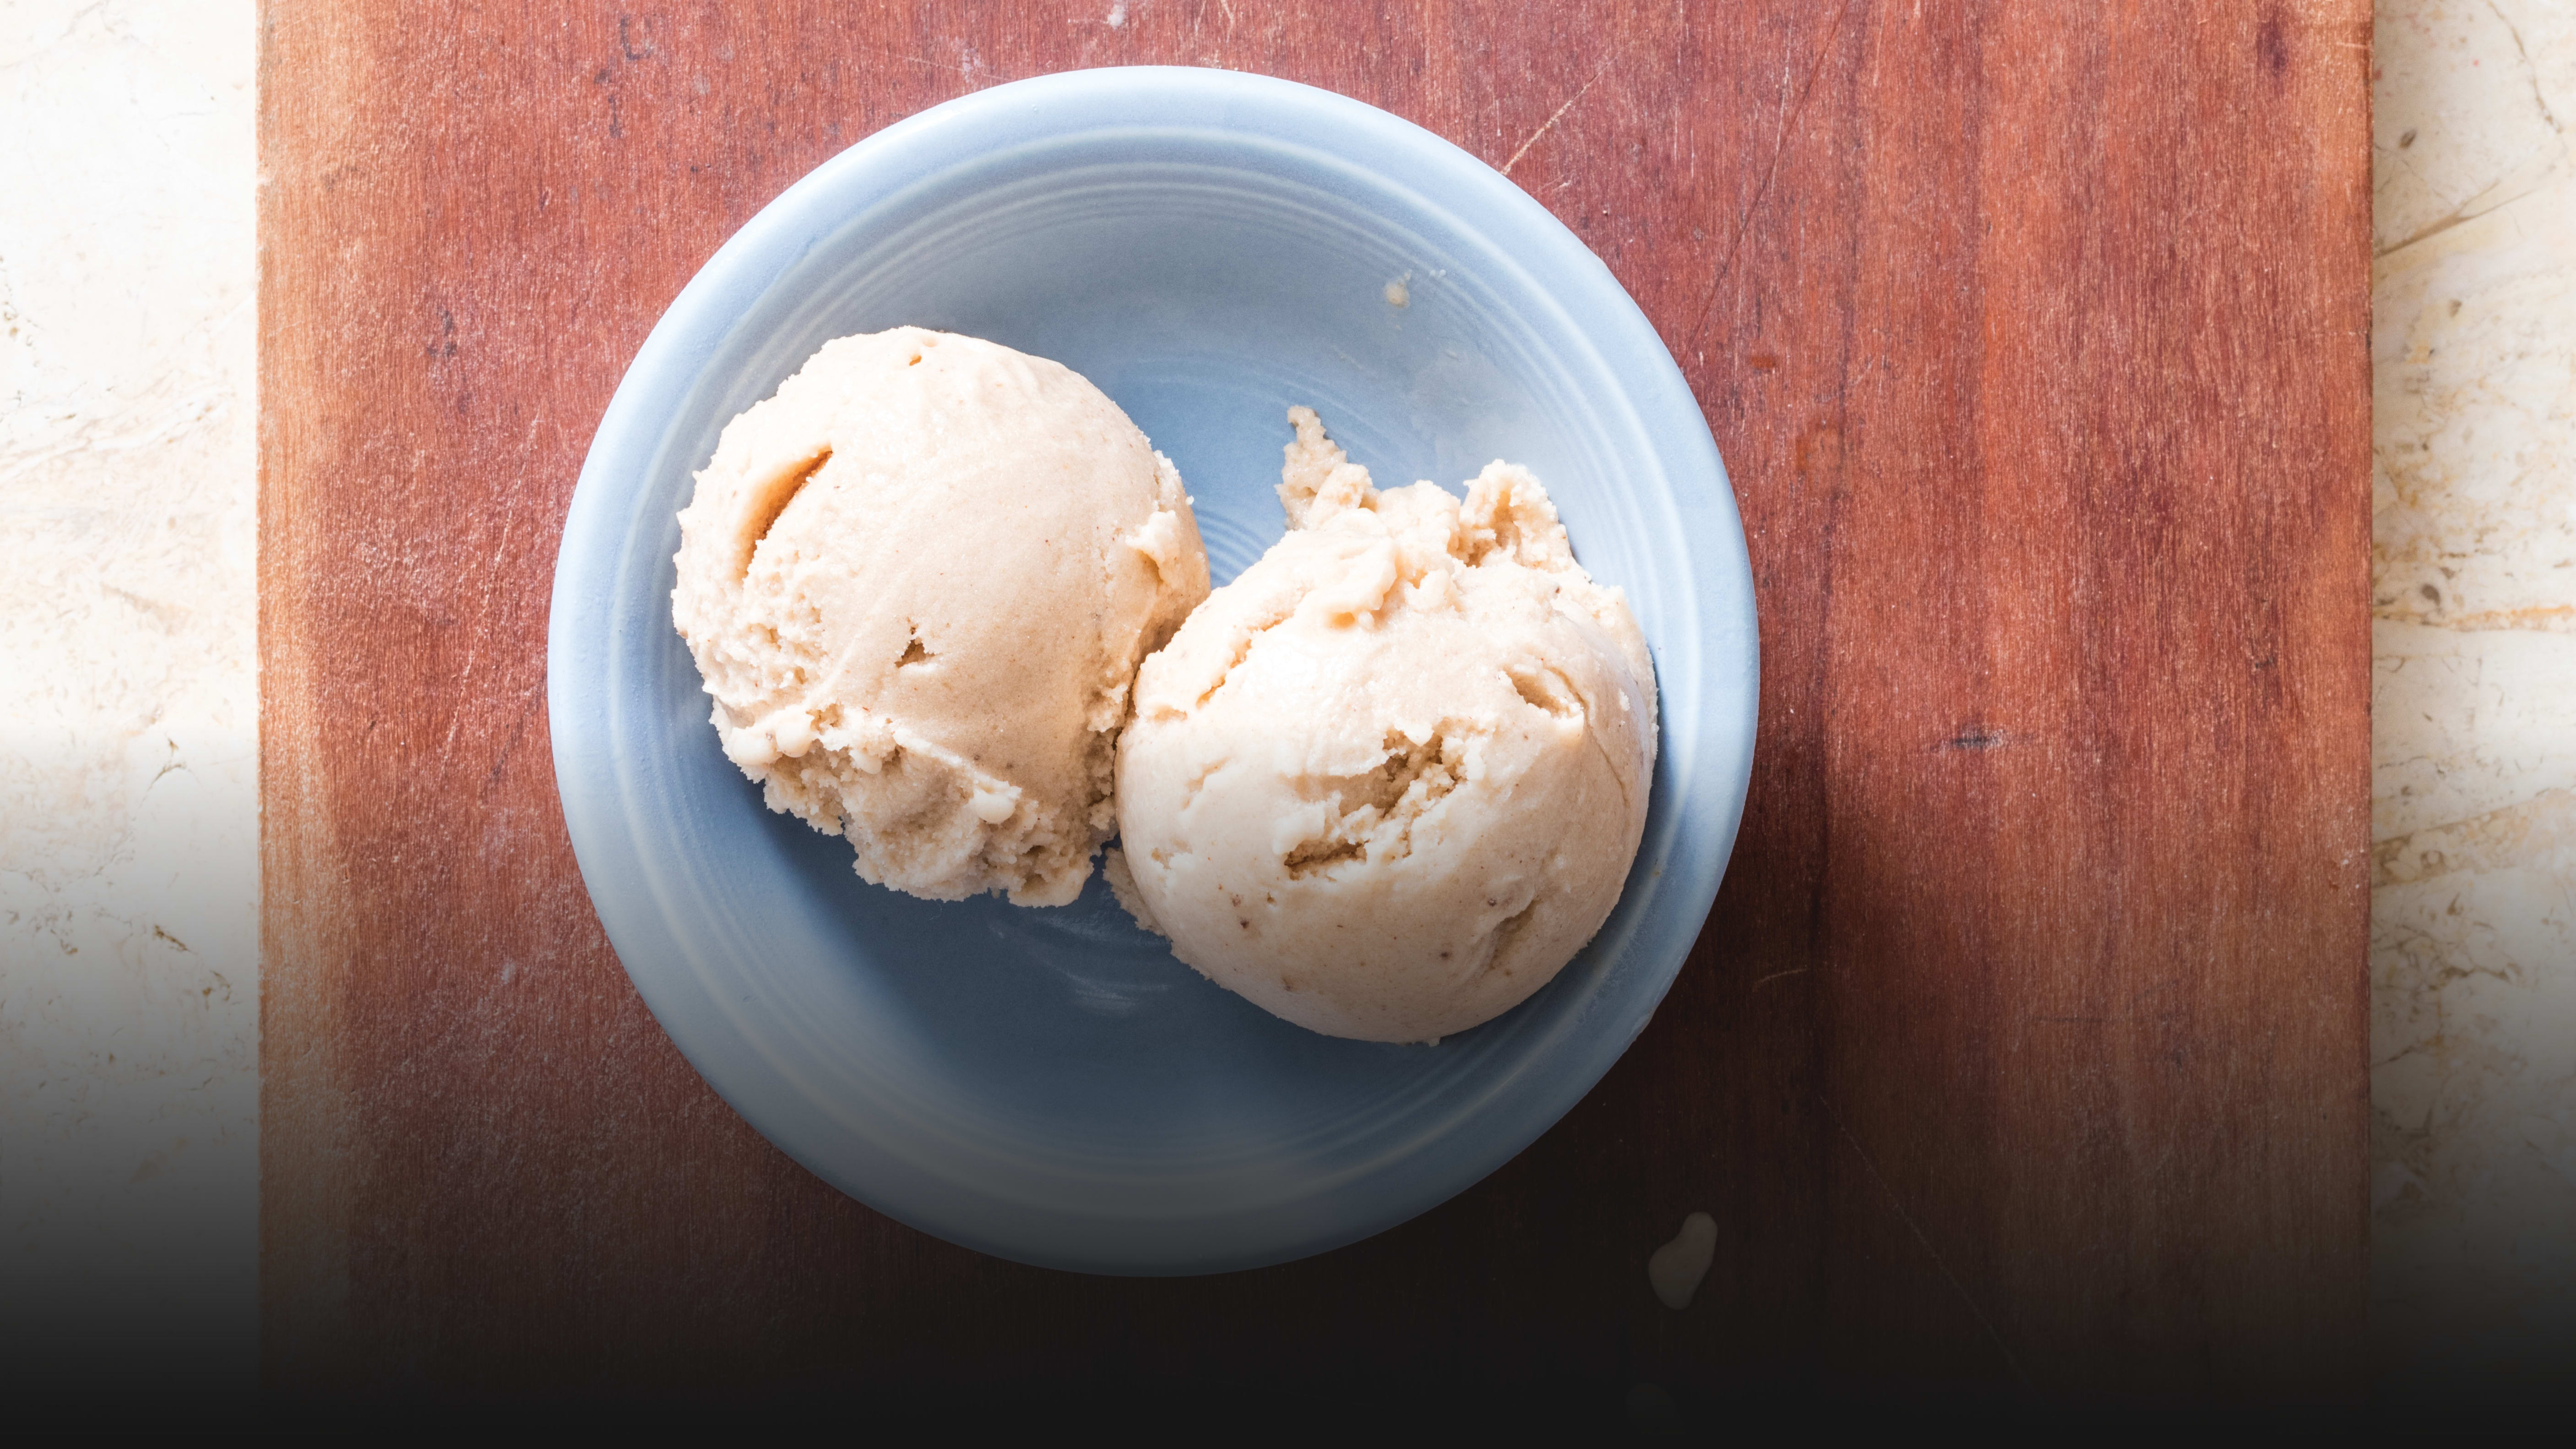 Make Incredible Ice Cream with Frozen Bananas and a Food Processor